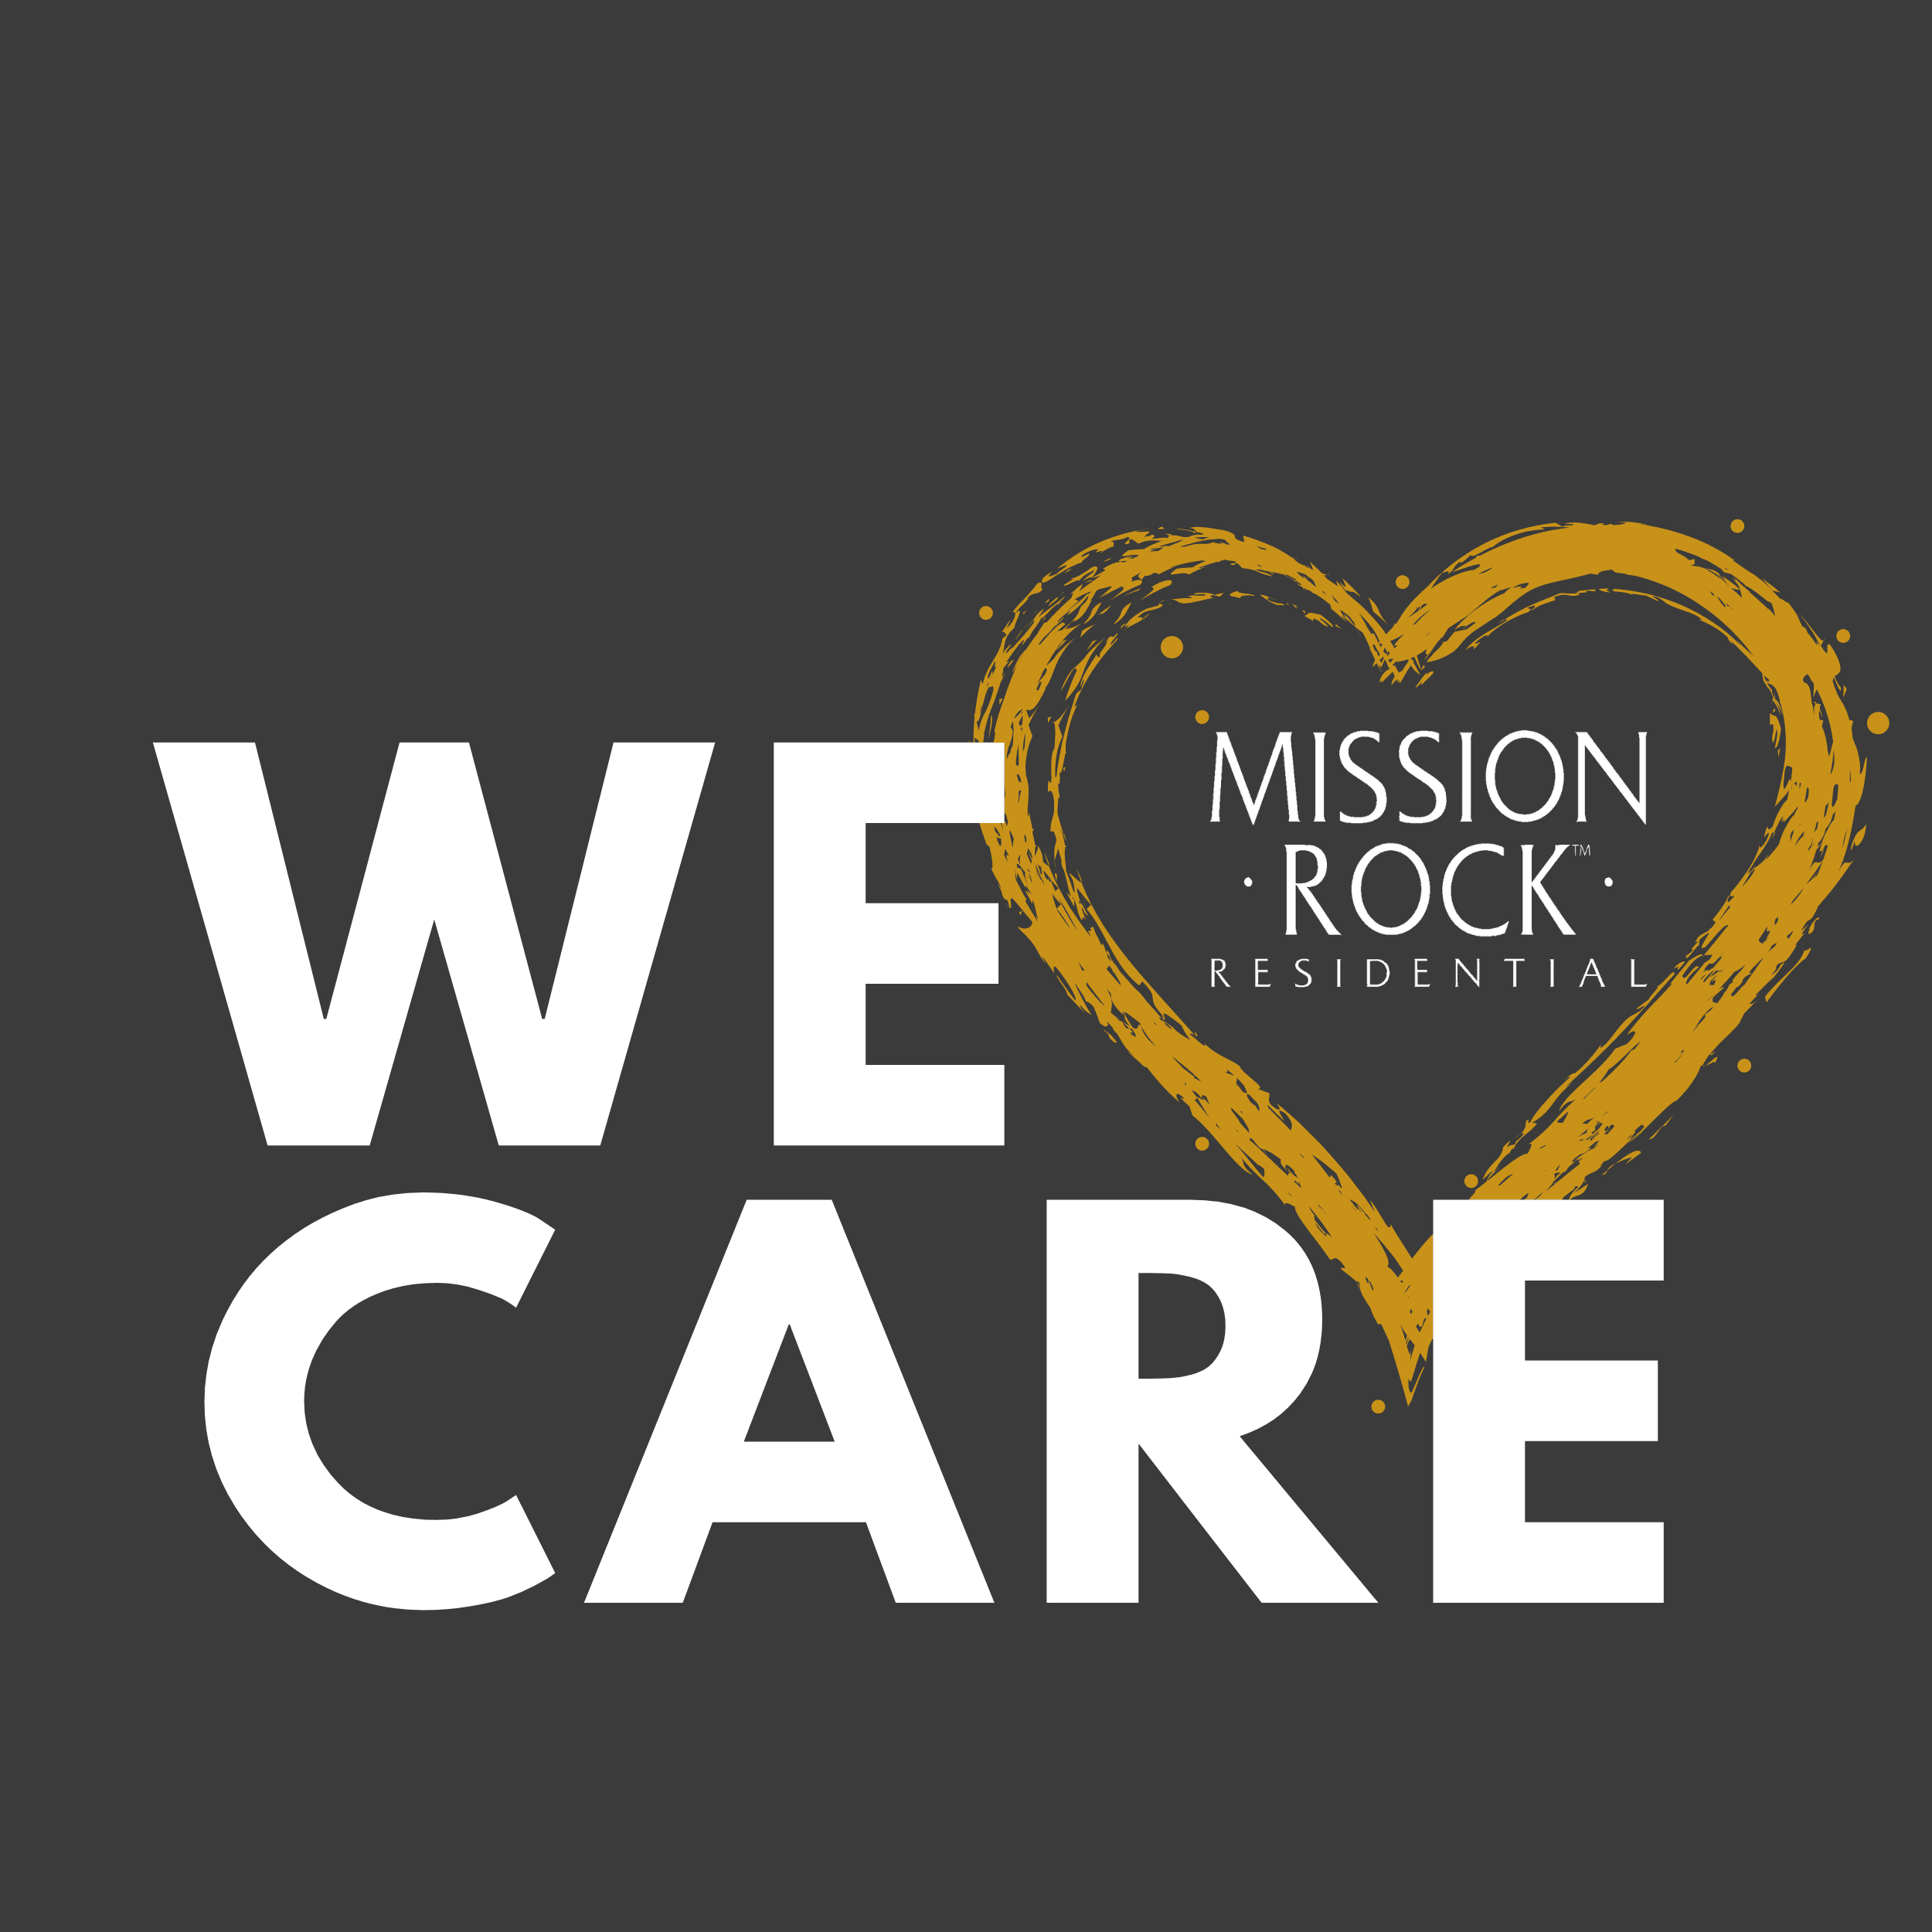 Mission Rock' We Care Commitment with your Safety in Mind.